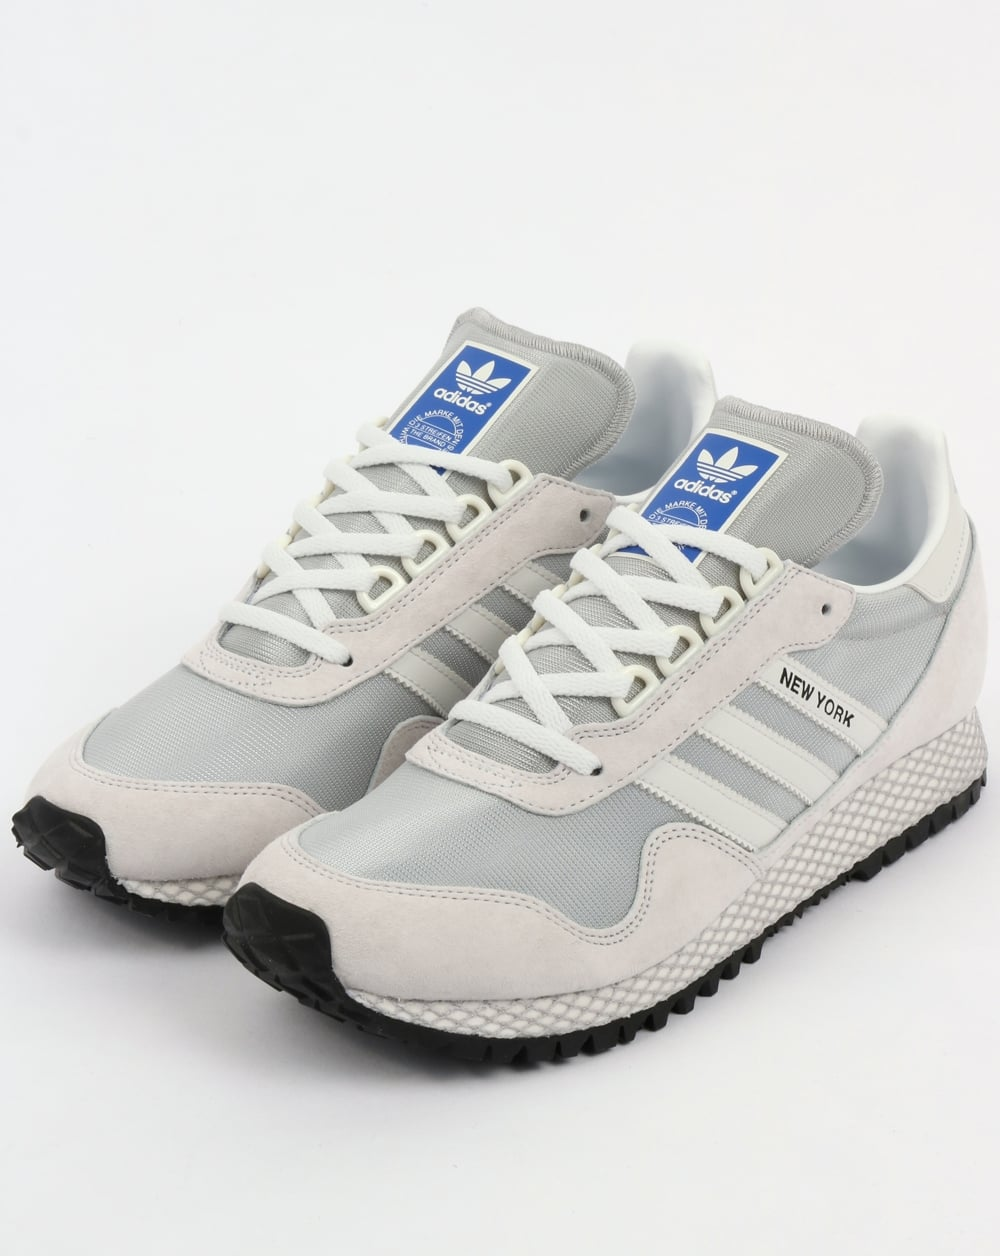 9868ab20fb8c7b adidas Trainers Adidas New York Trainers Crystal White Grey